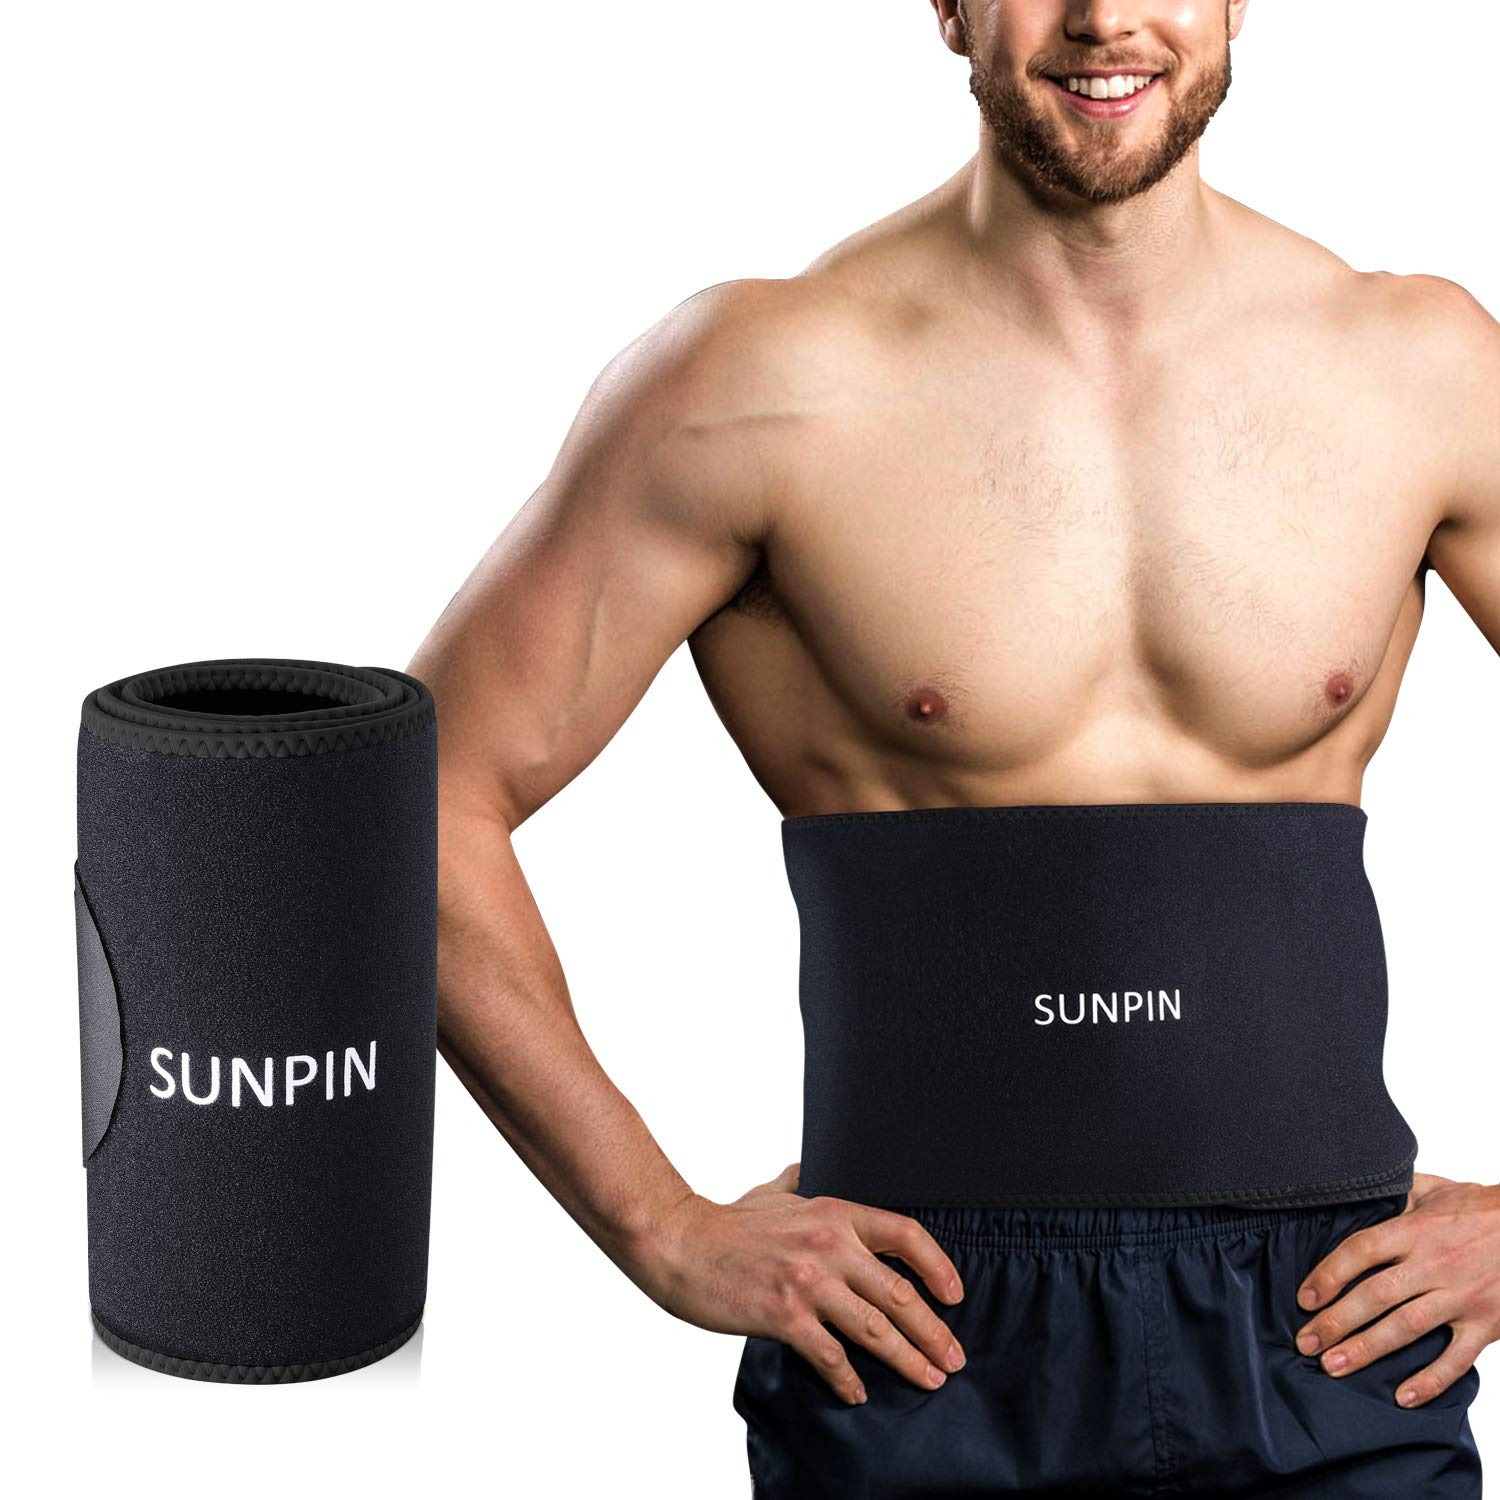 Waist Trimmers SUNPIN, Waist Trainer Slimming Belt, Adjustable Stomach Fat Burner Wrap, Low Back Lumbar Support for Men & Women - Promotes Healthy Sweat, Weight Loss (Black)